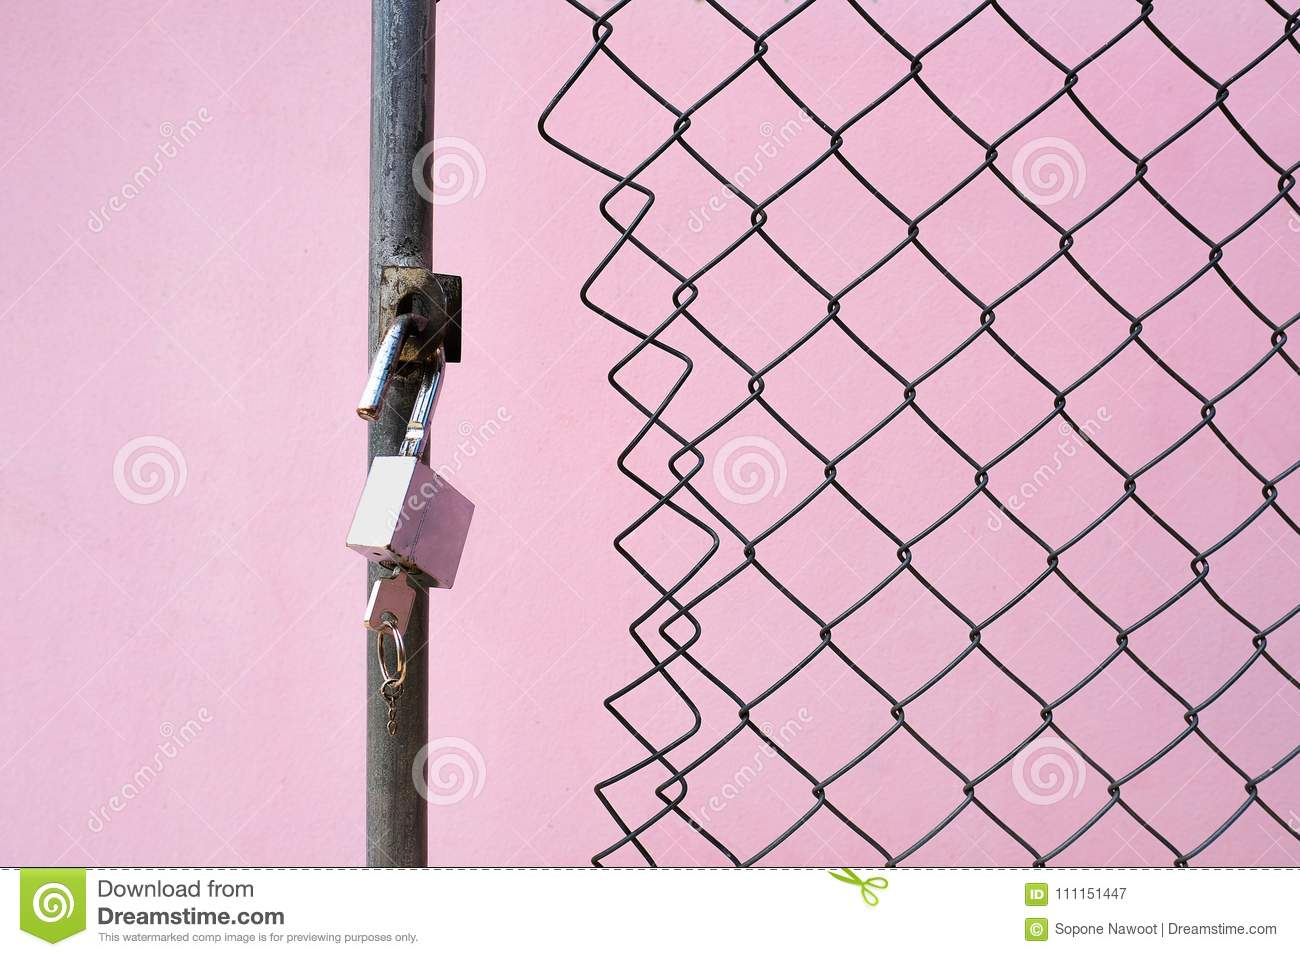 A Padlock And Key At The Wired Gate Stock Image Of Metal Buildings